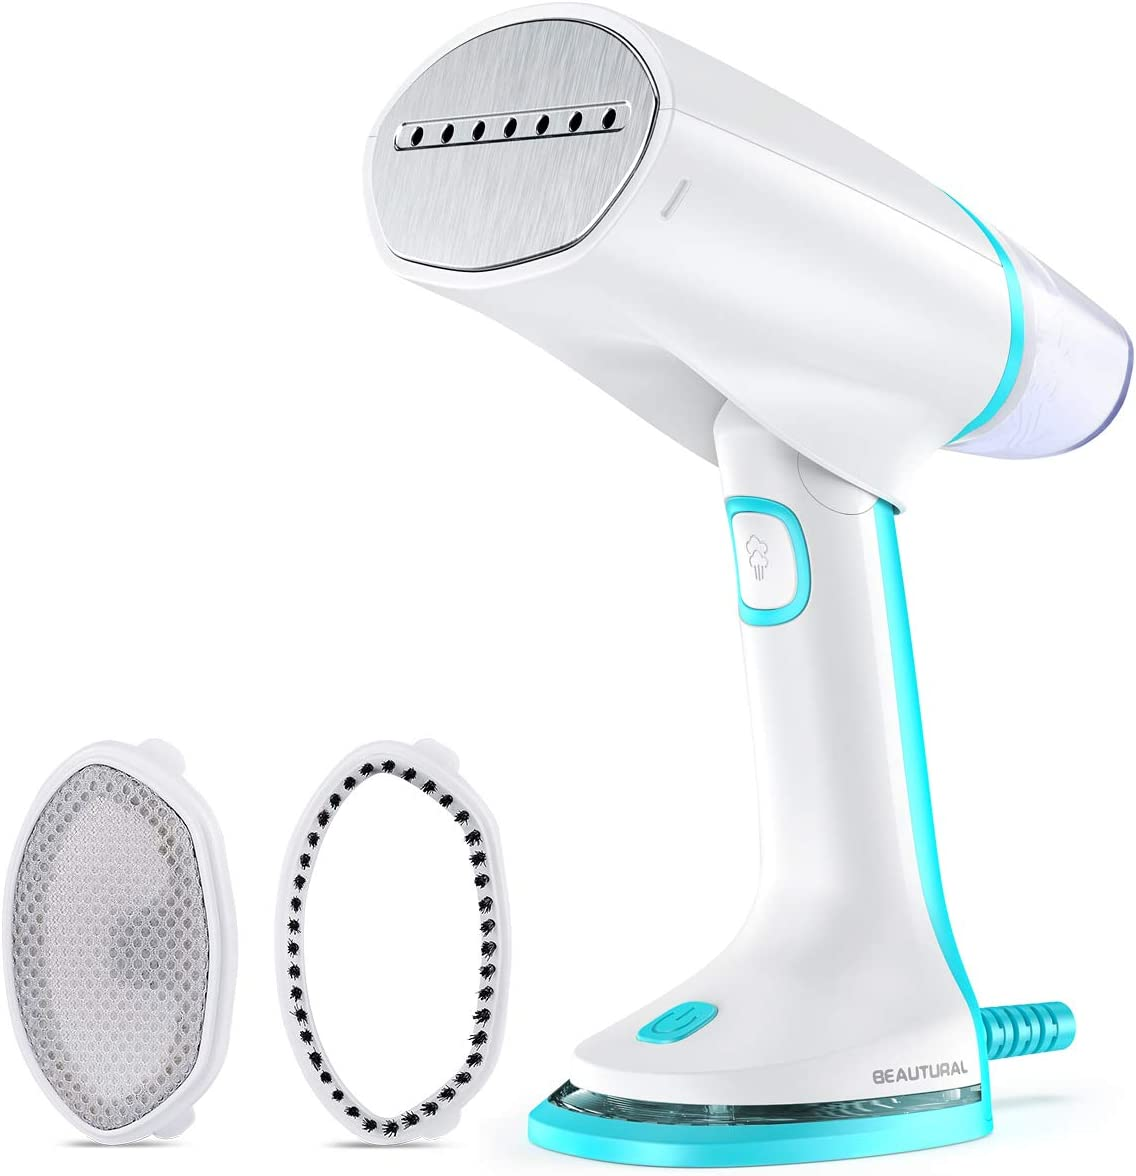 BEAUTURAL Foldable Travel Steamer for Clothes